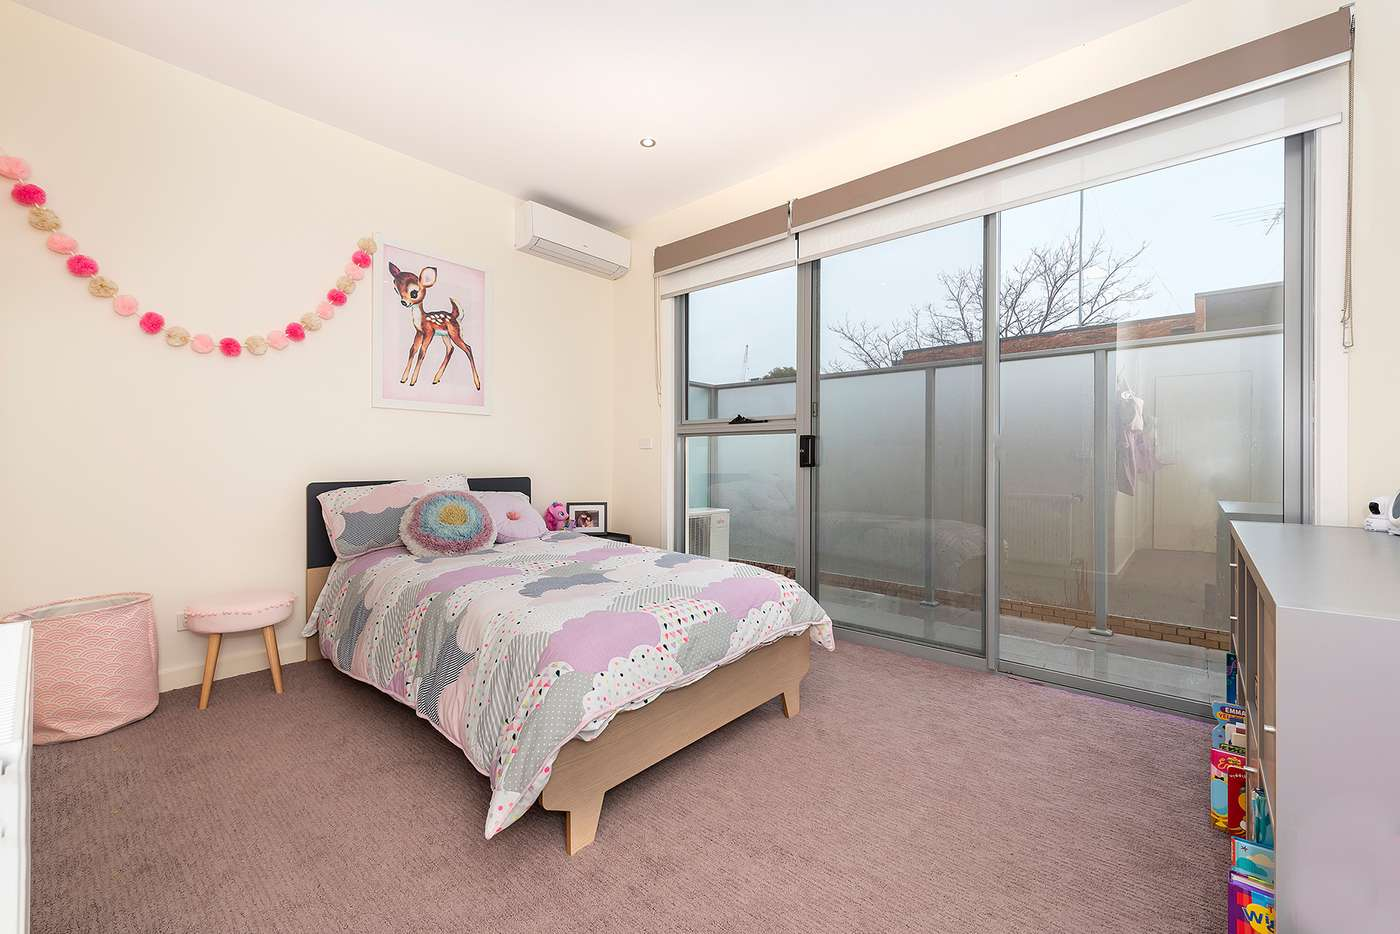 Sixth view of Homely townhouse listing, 30 Clarke Street, Brunswick East VIC 3057